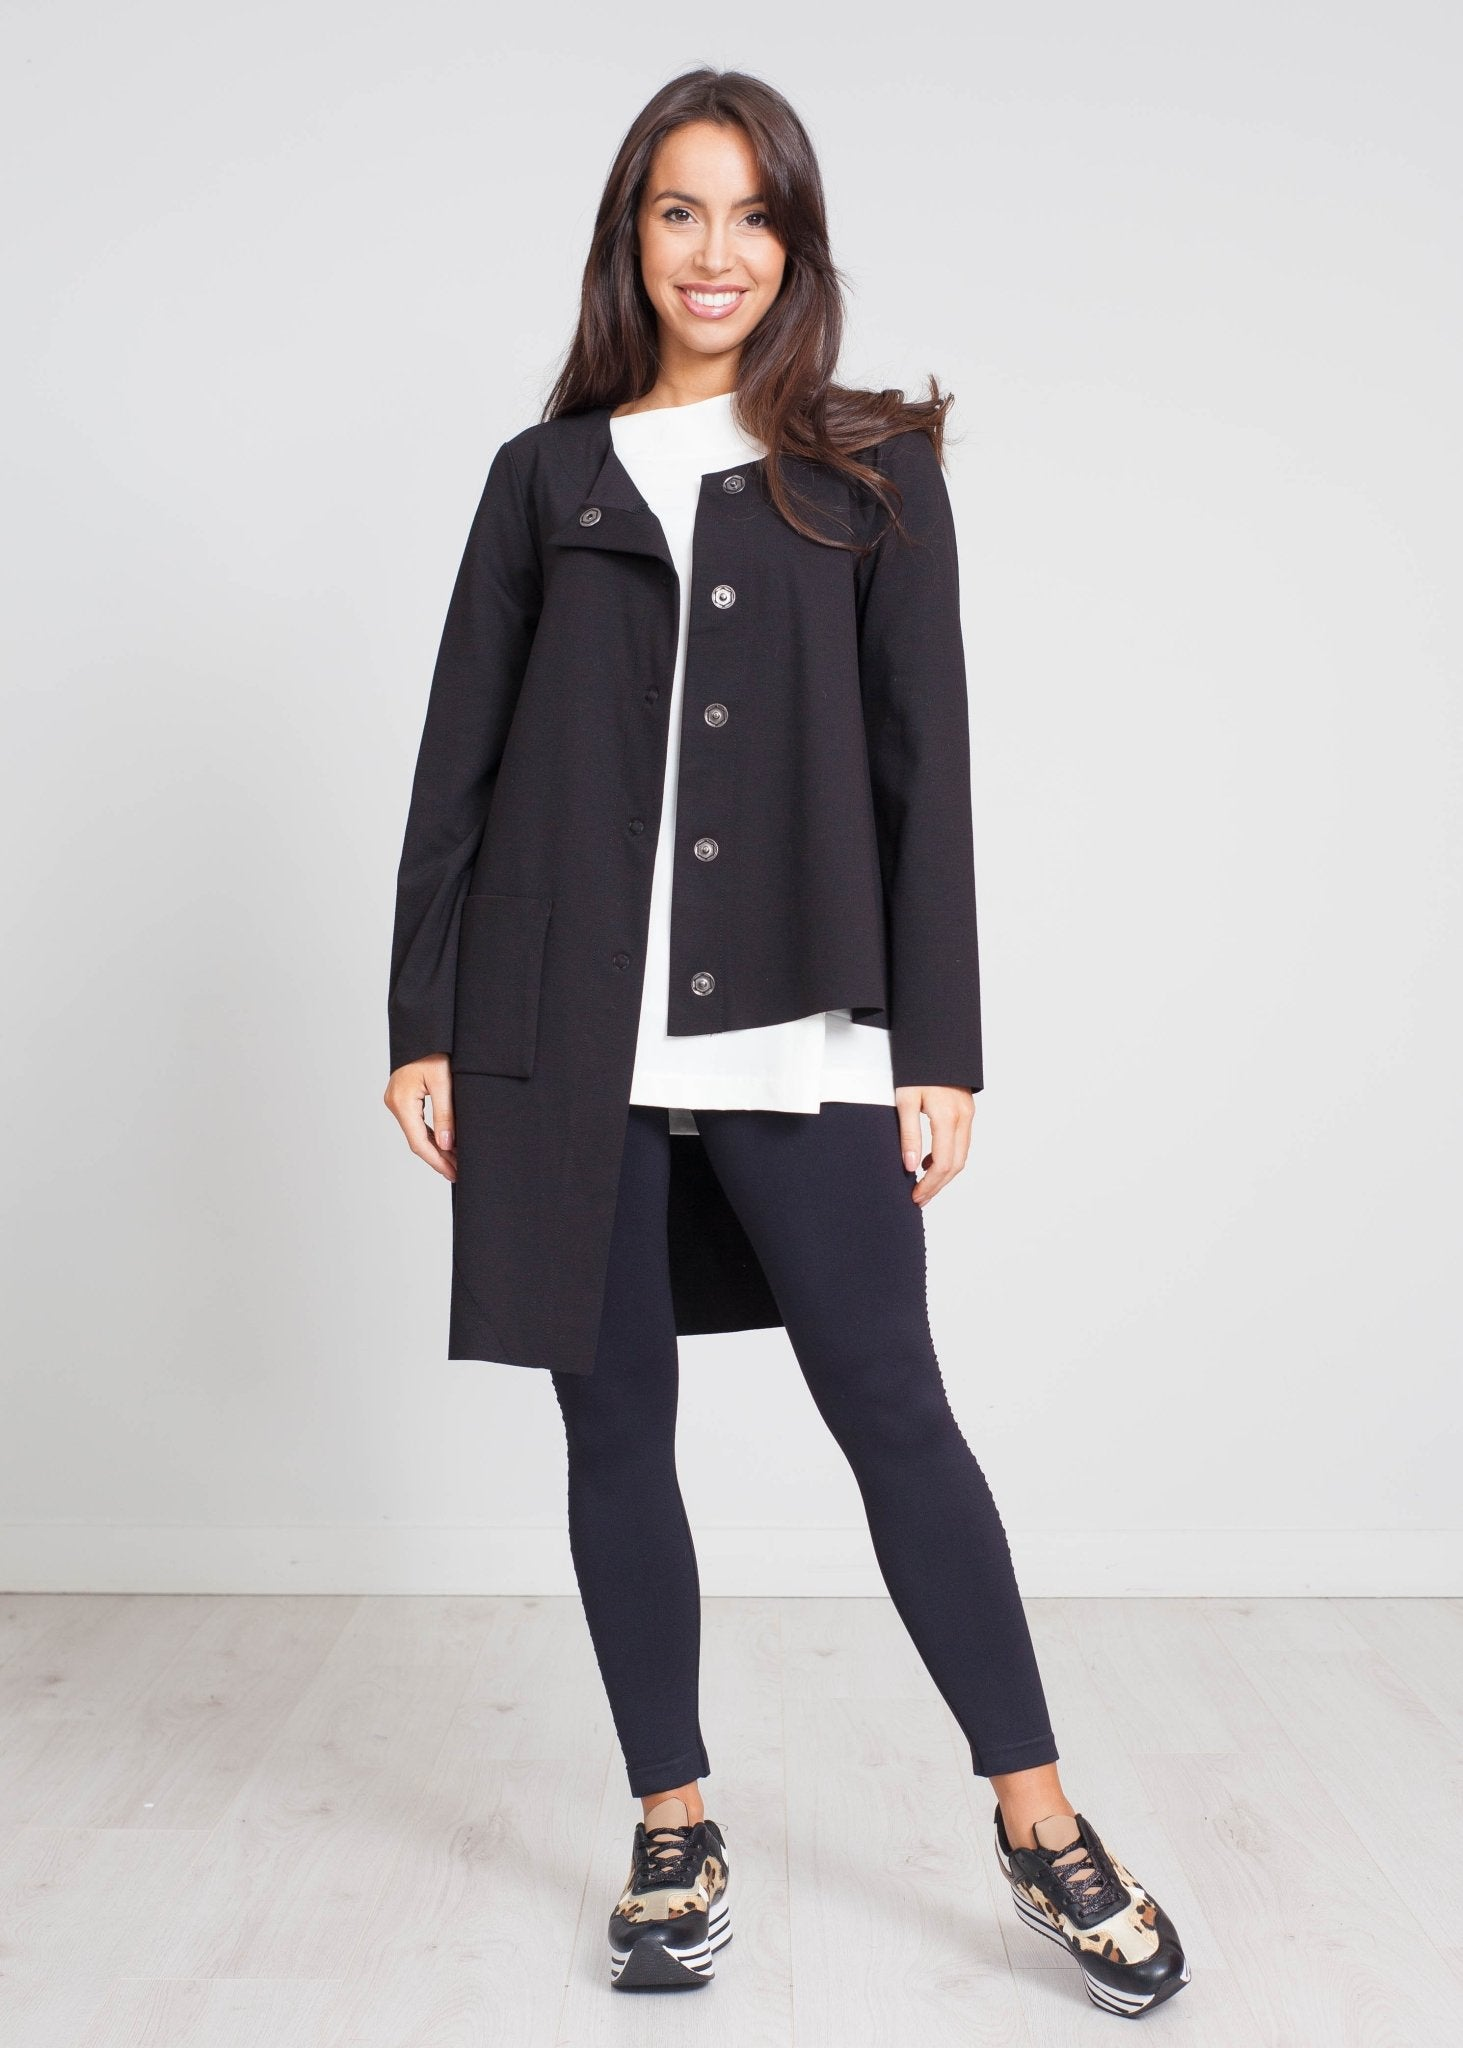 Cleo Asymmetric Jacket In Black - The Walk in Wardrobe